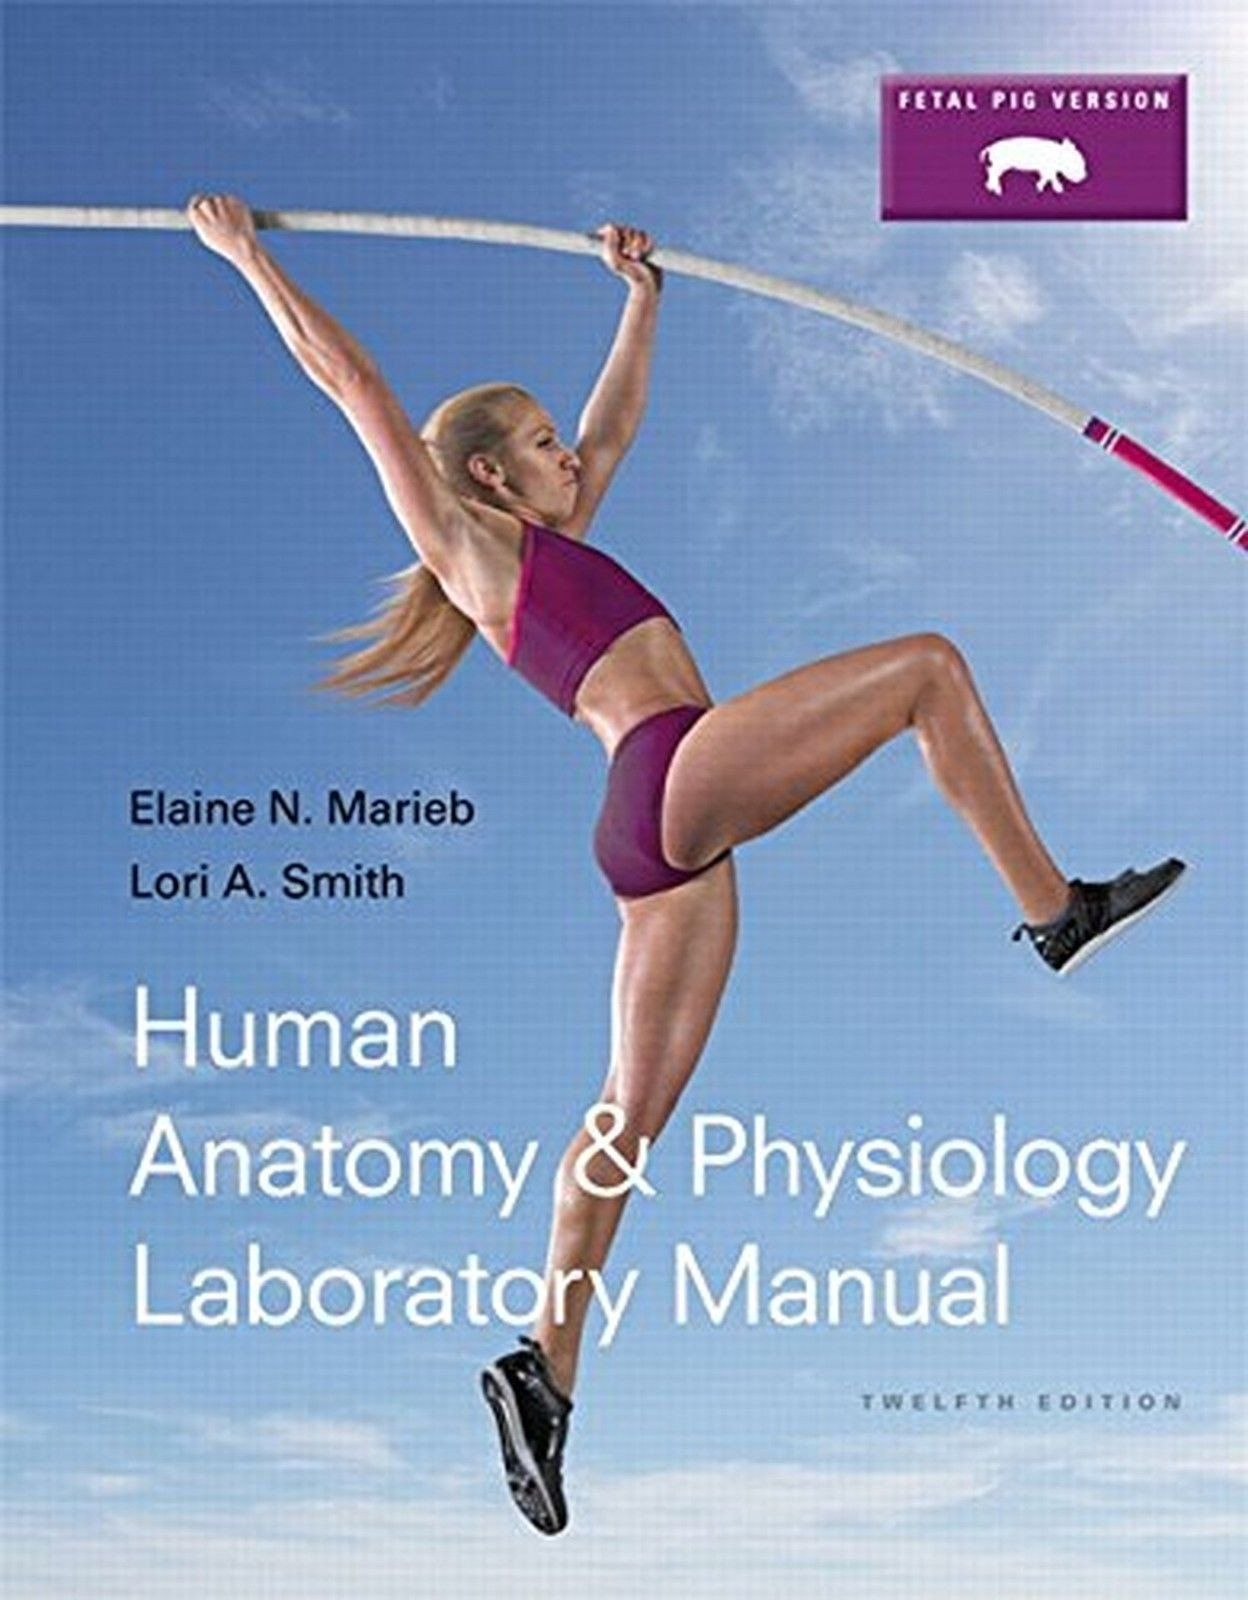 Human Anatomy & Physiology Laboratory Manual Fetal Pig Version (12Th ...